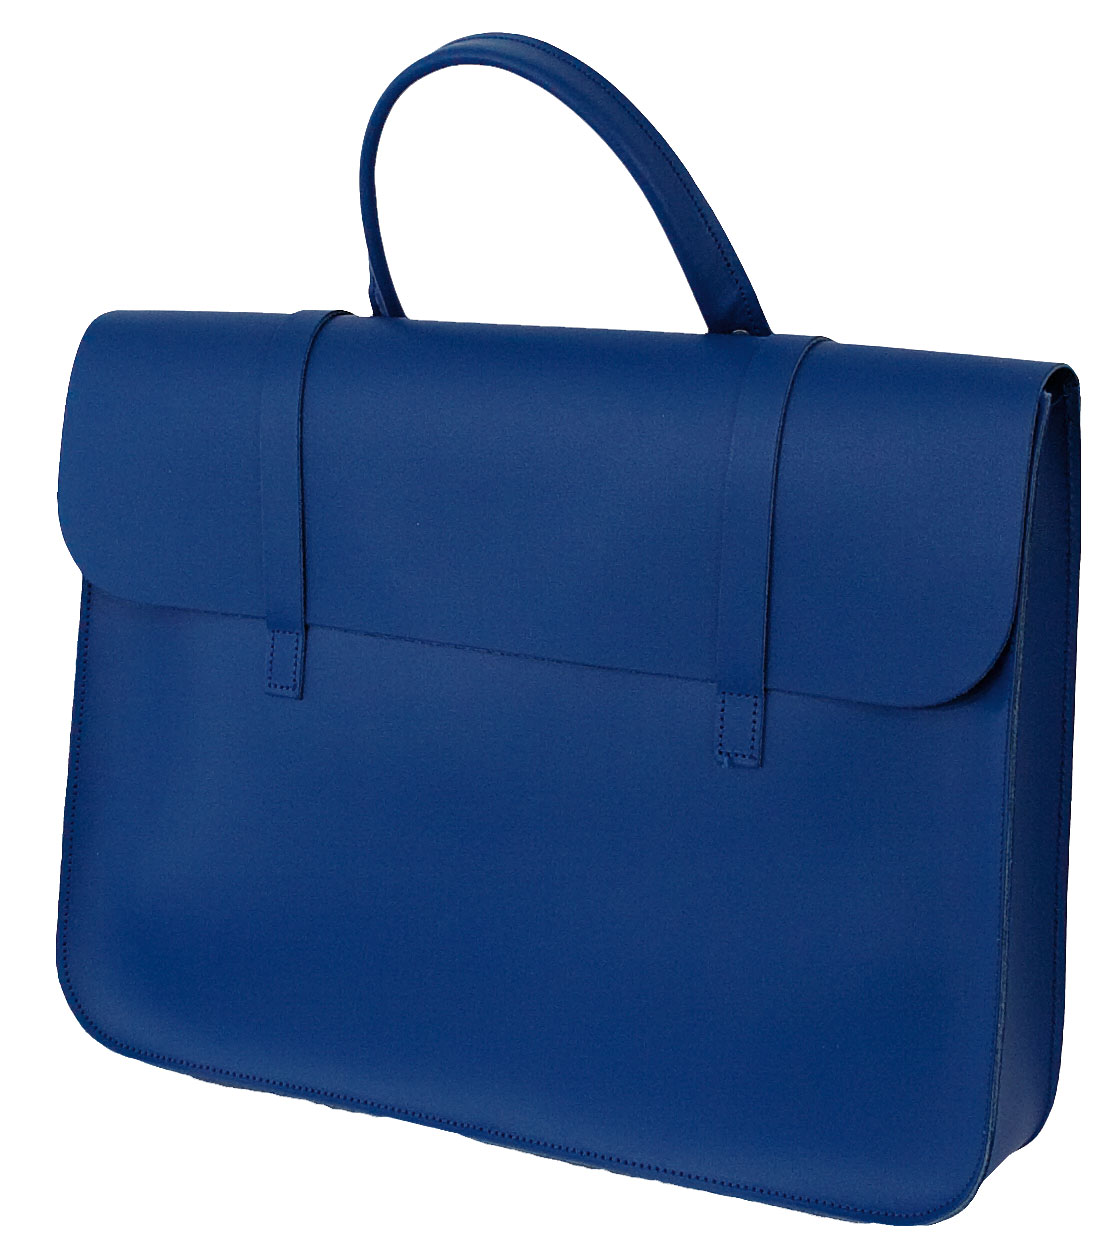 Music Case Leather - Royal Blue